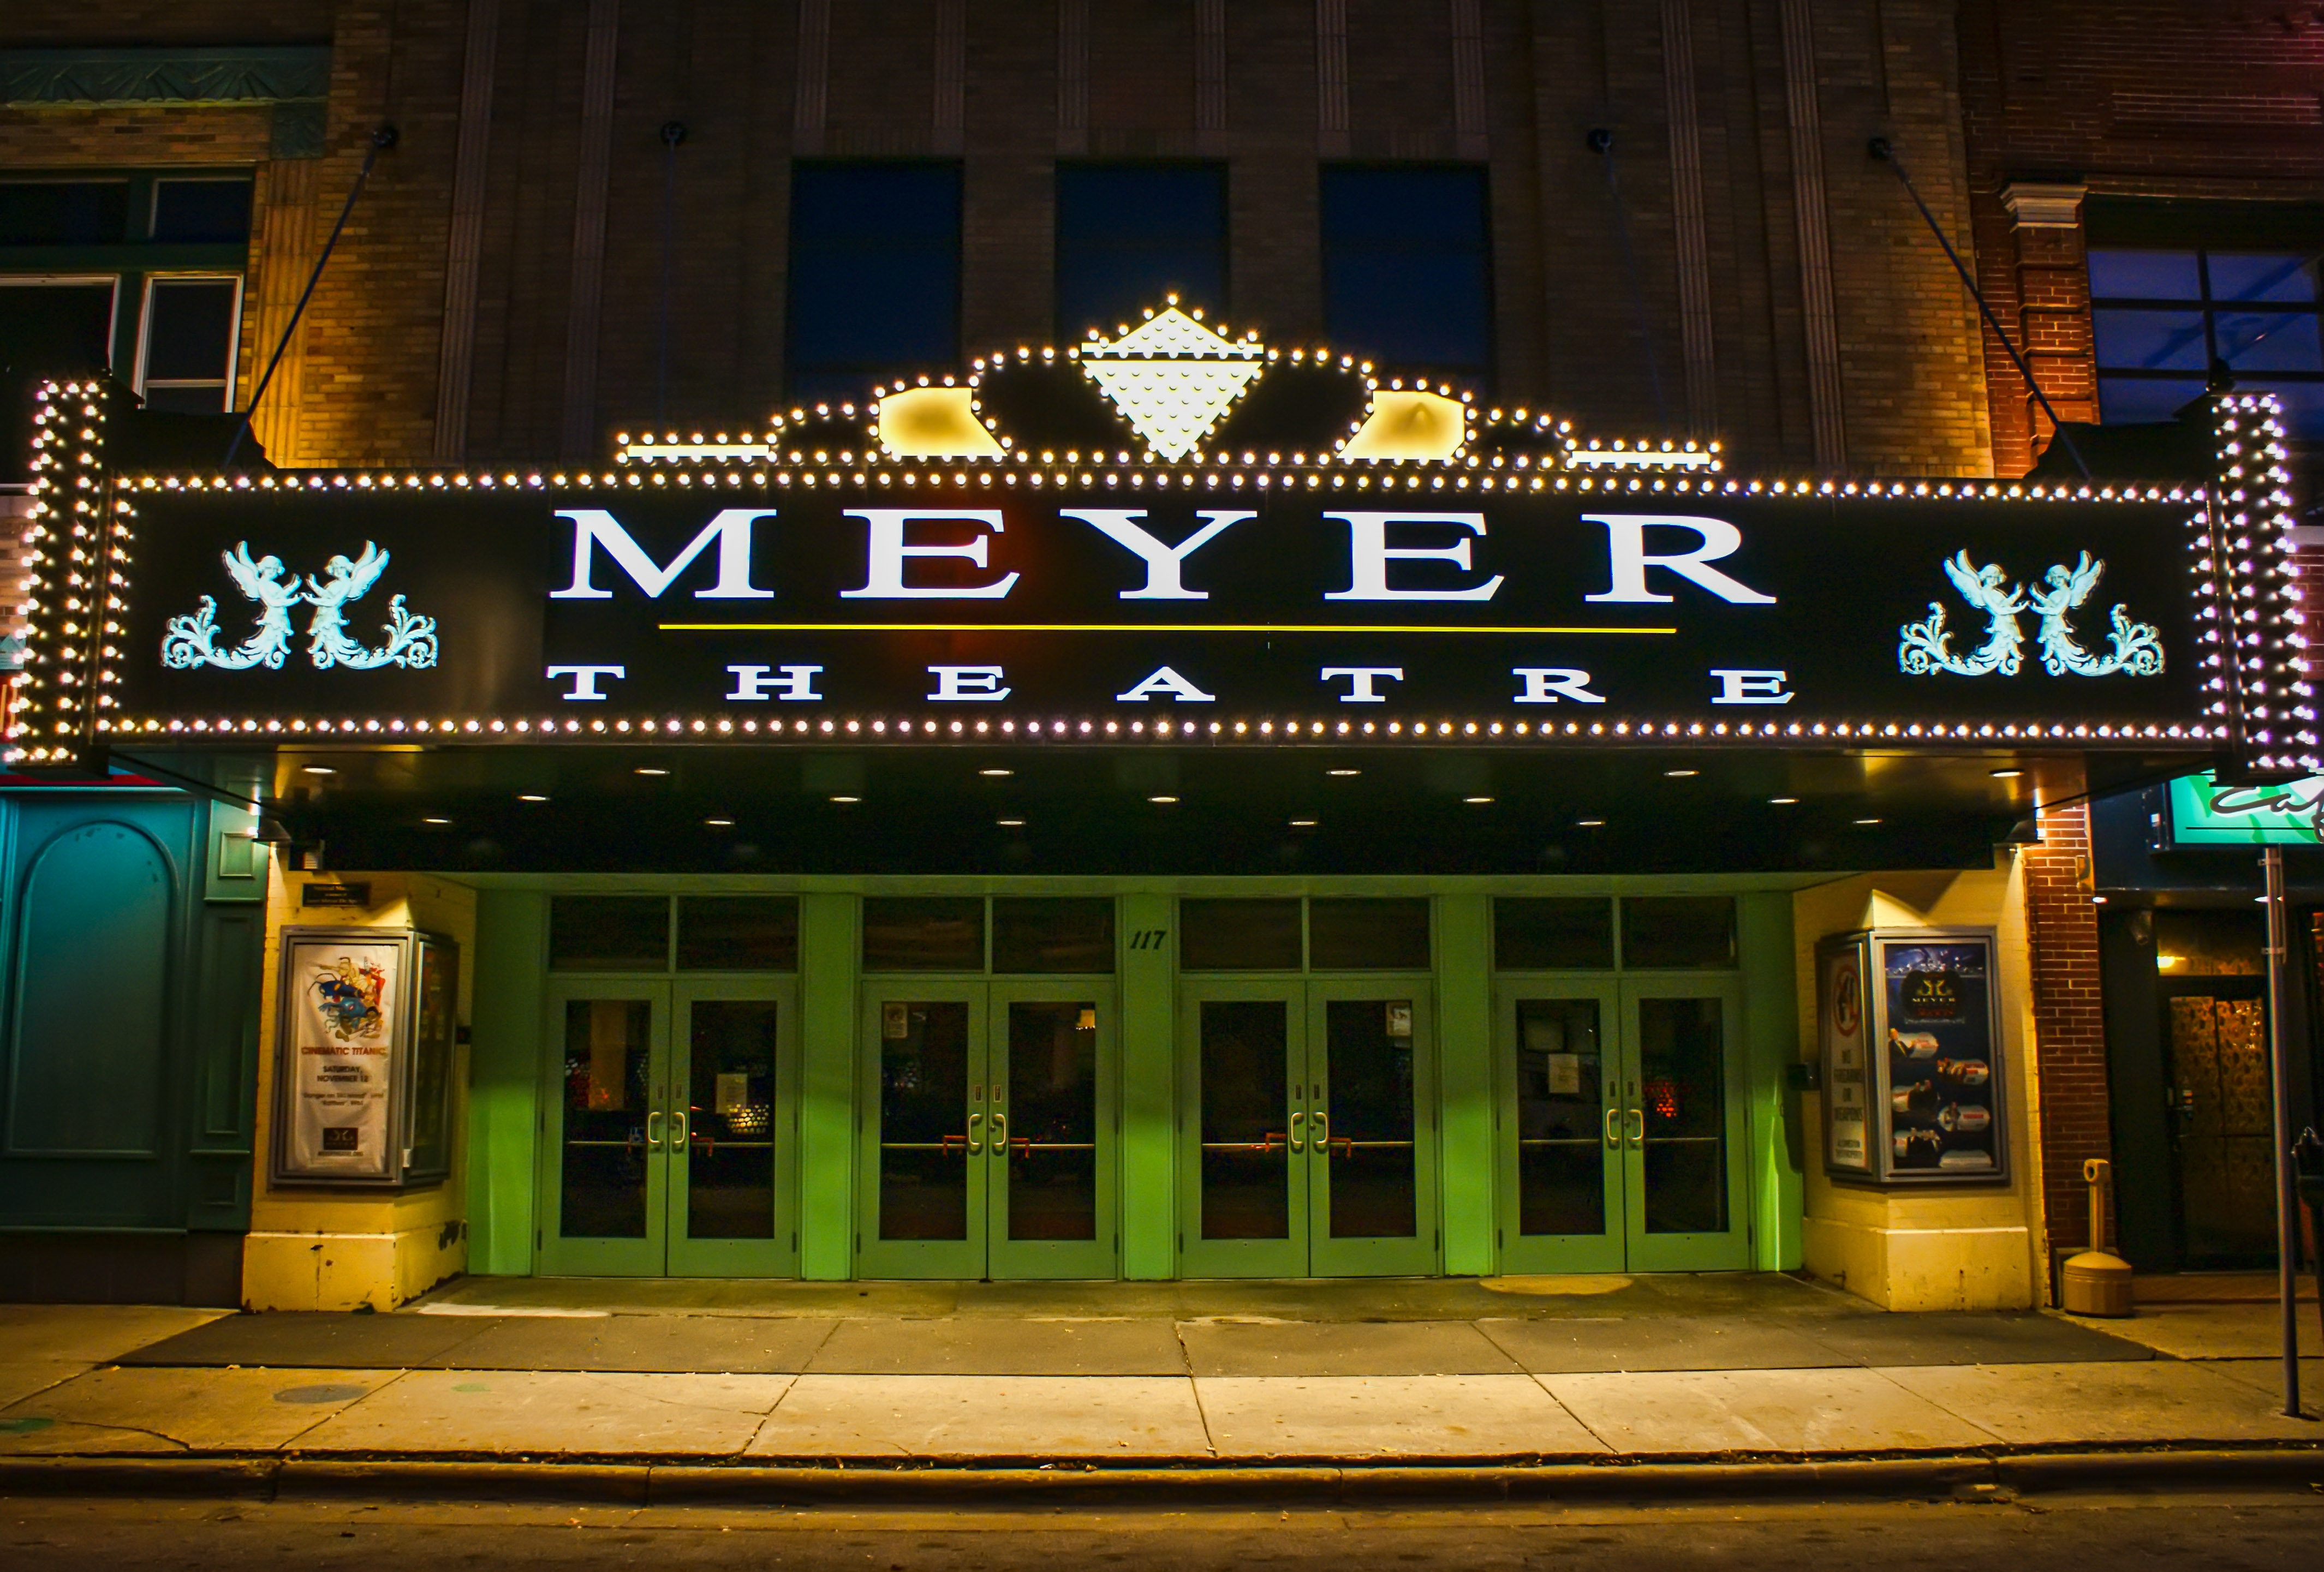 Historic Meyer Theater in Green Bay Wisconsin